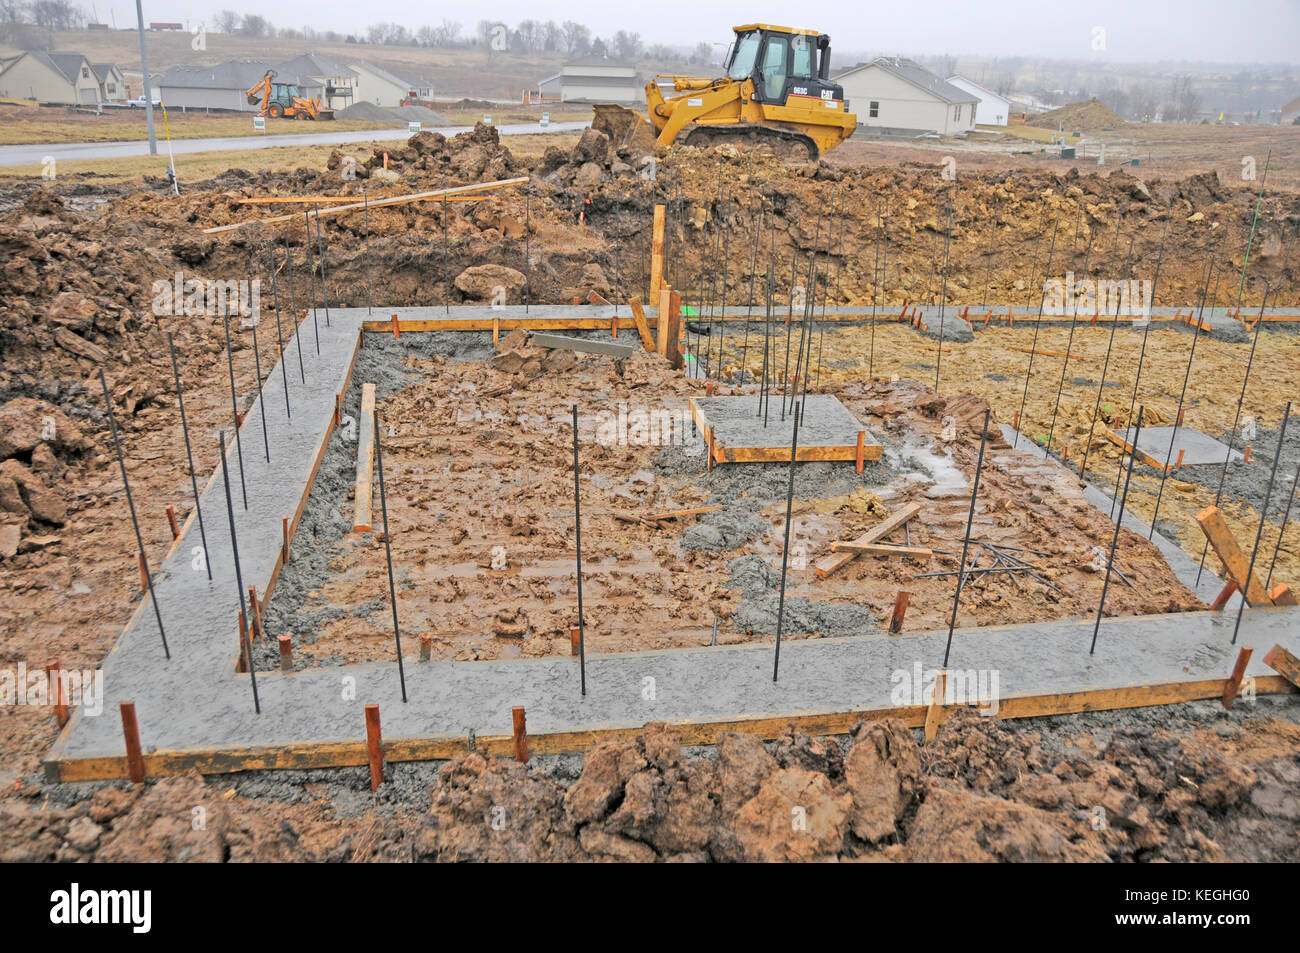 Foundation Footing Being Built For A House Series 1 Stock Photo Alamy